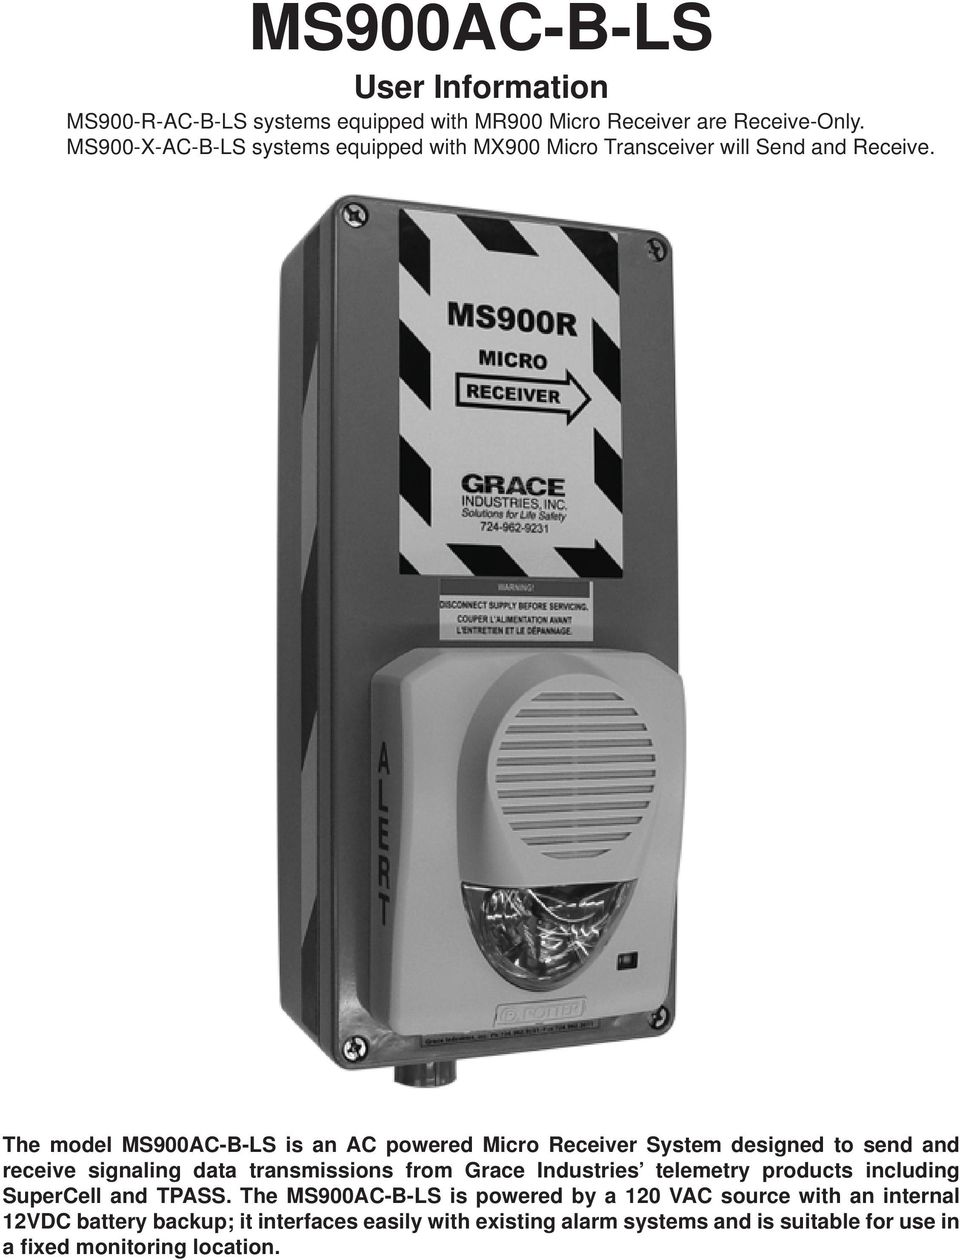 The model MS900AC-B-LS is an AC powered Micro Receiver System designed to send and receive signaling data transmissions from Grace Industries